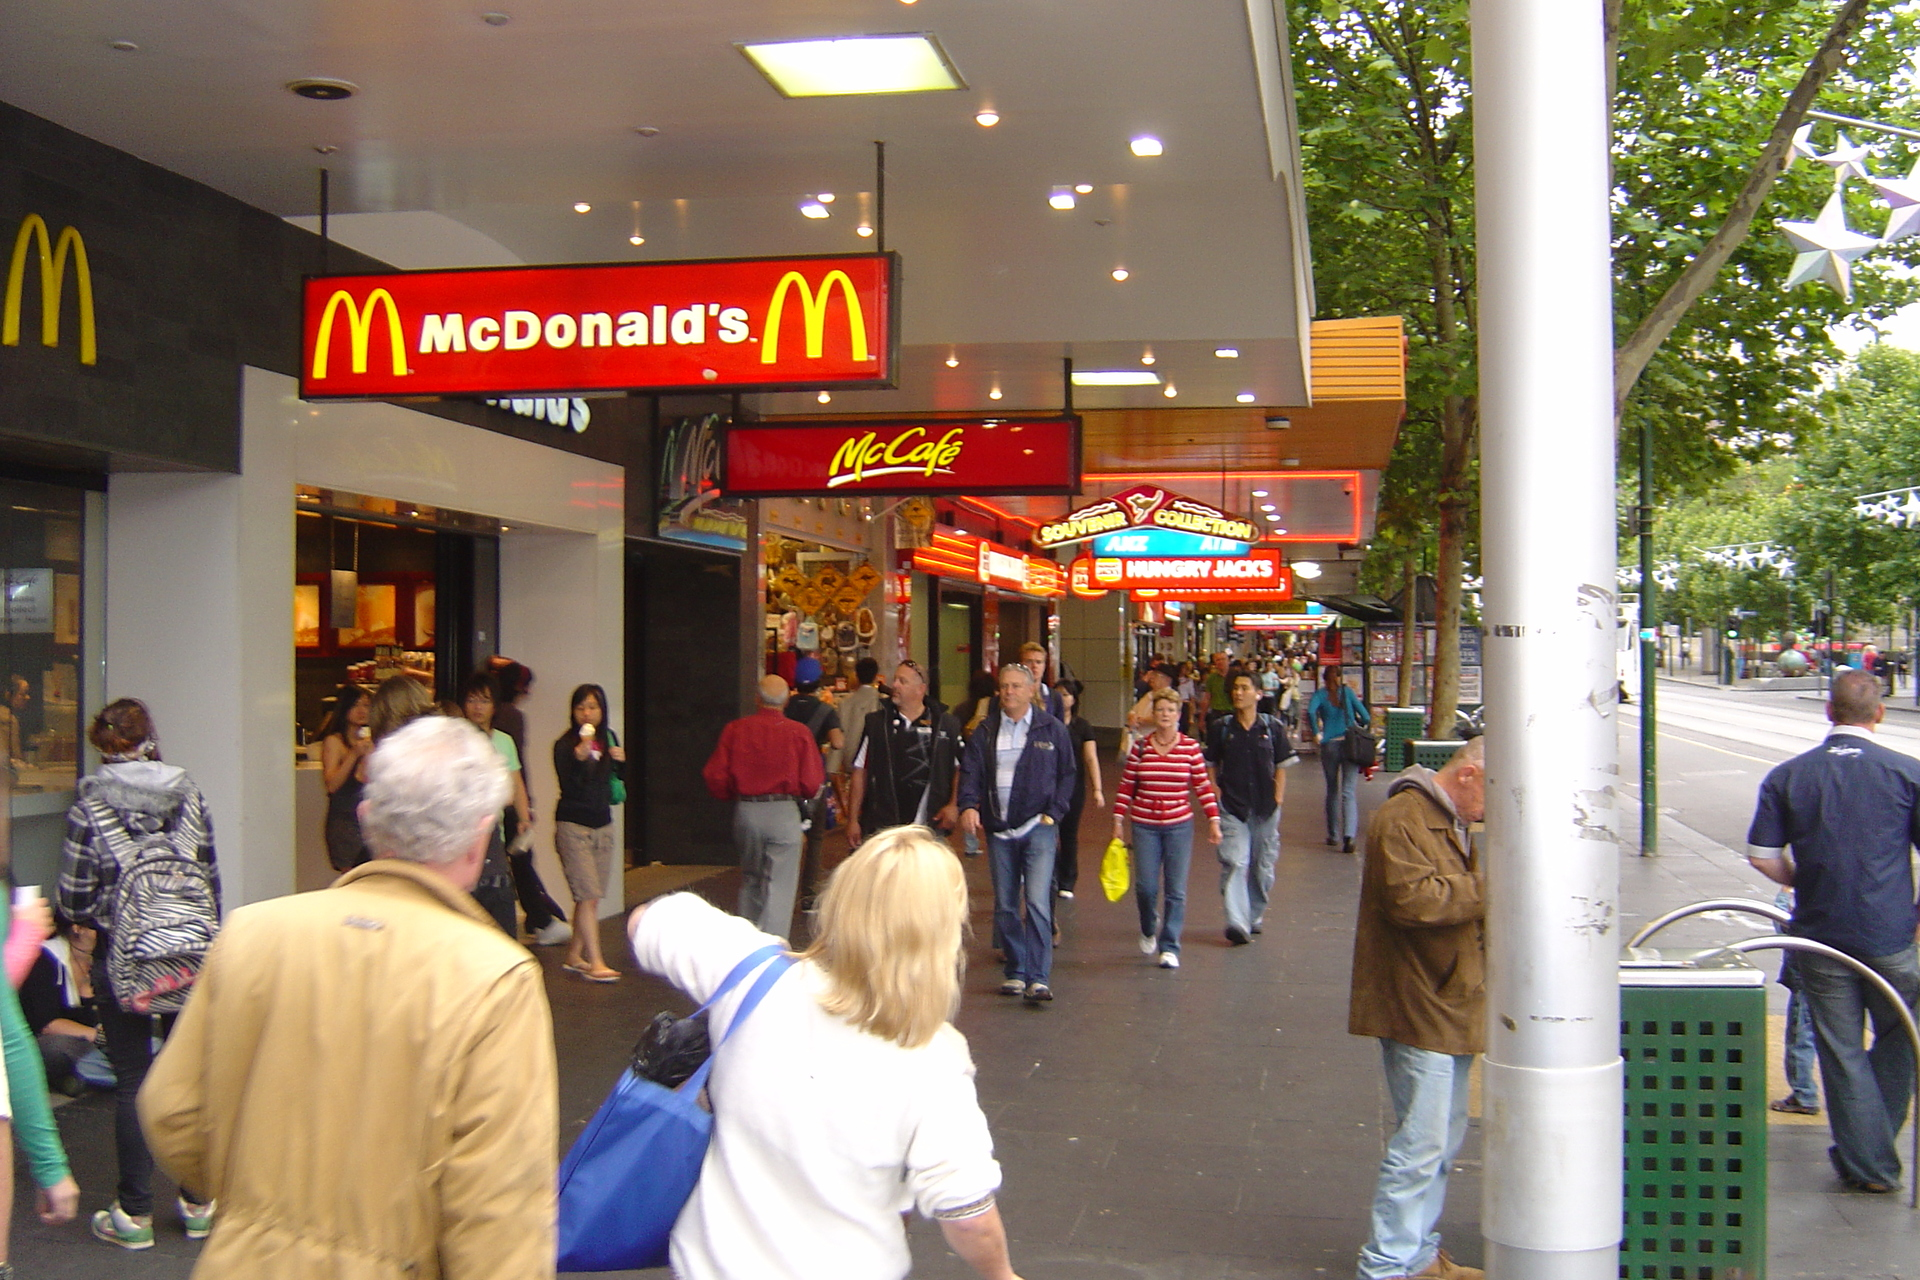 the nonmarket environment of mcdonald's the environment of business has interrelated market and nonmarket components the market environment is characterized  y the structure of the markets in which a firm operates and the rules that govern market competion the nonmarket environment is characterized by the legal, political.